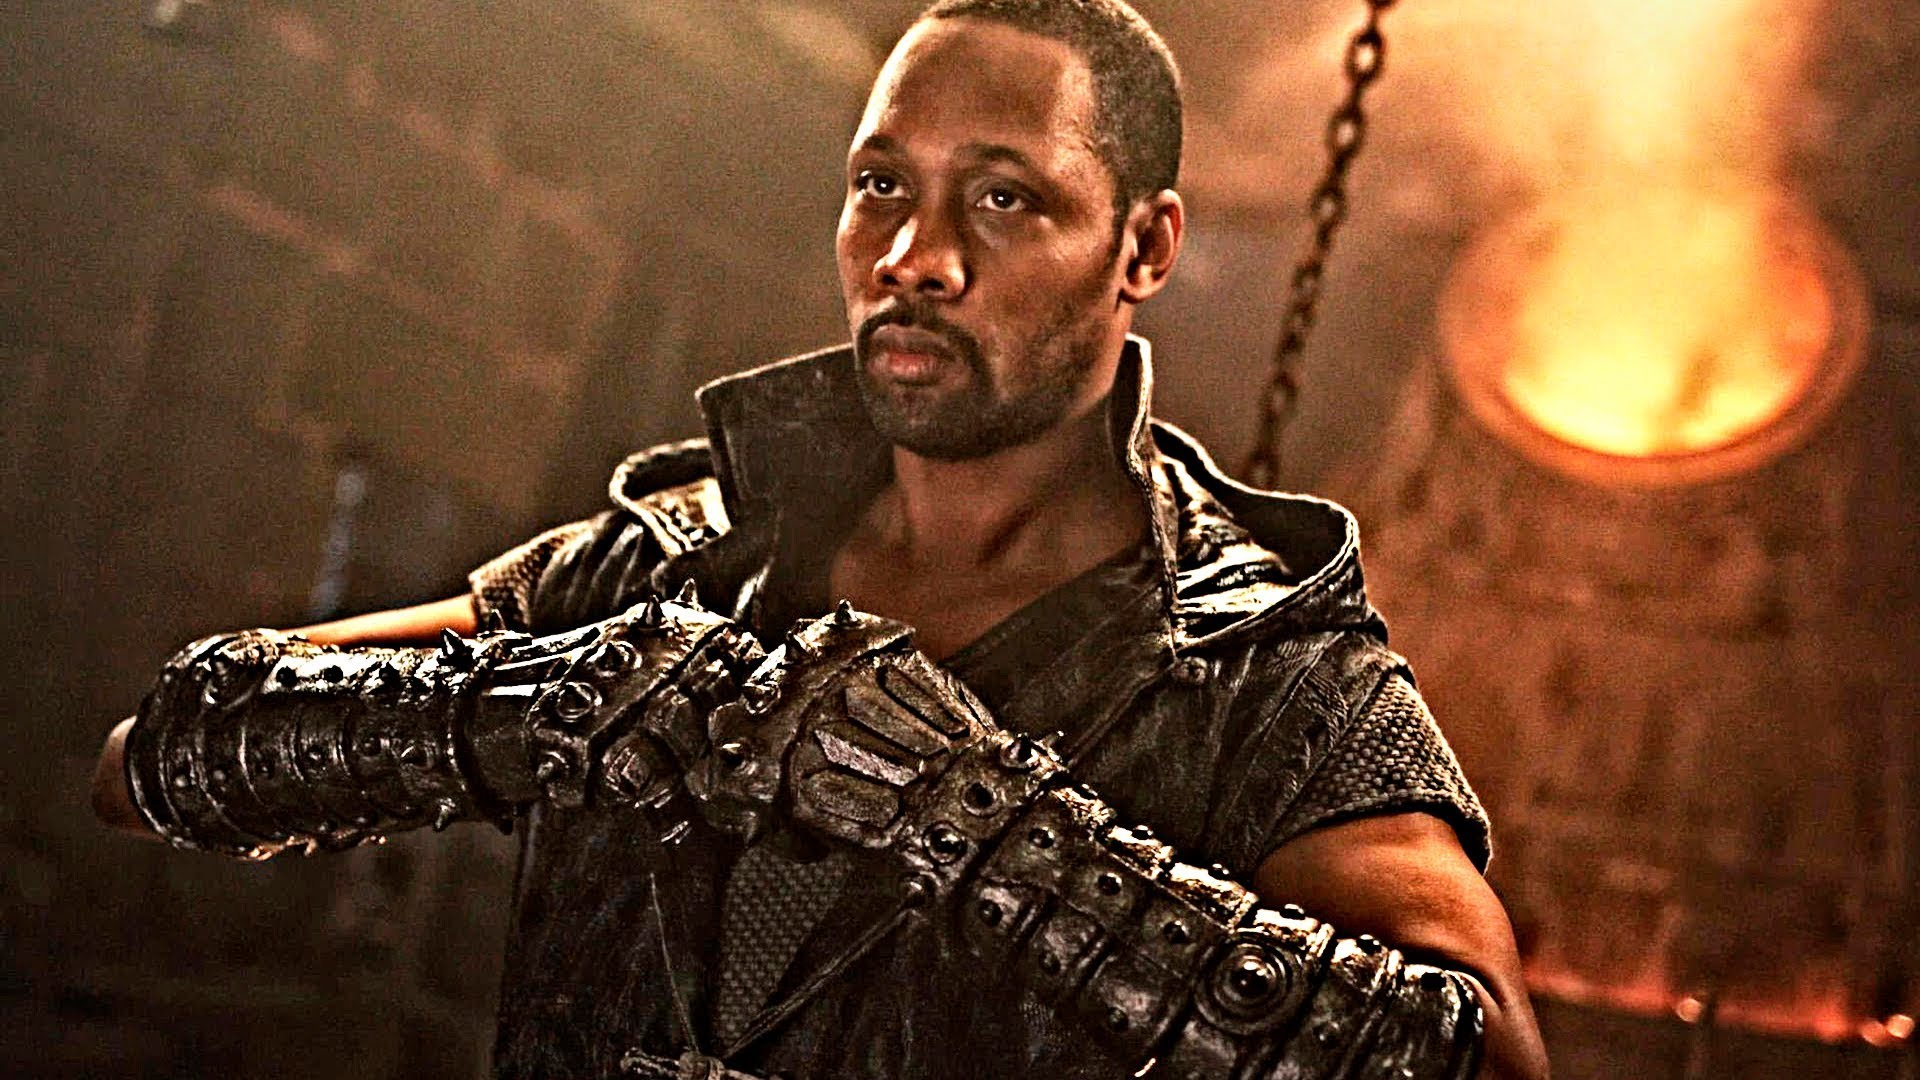 The RZA as The Man with the Iron Fists (2012)